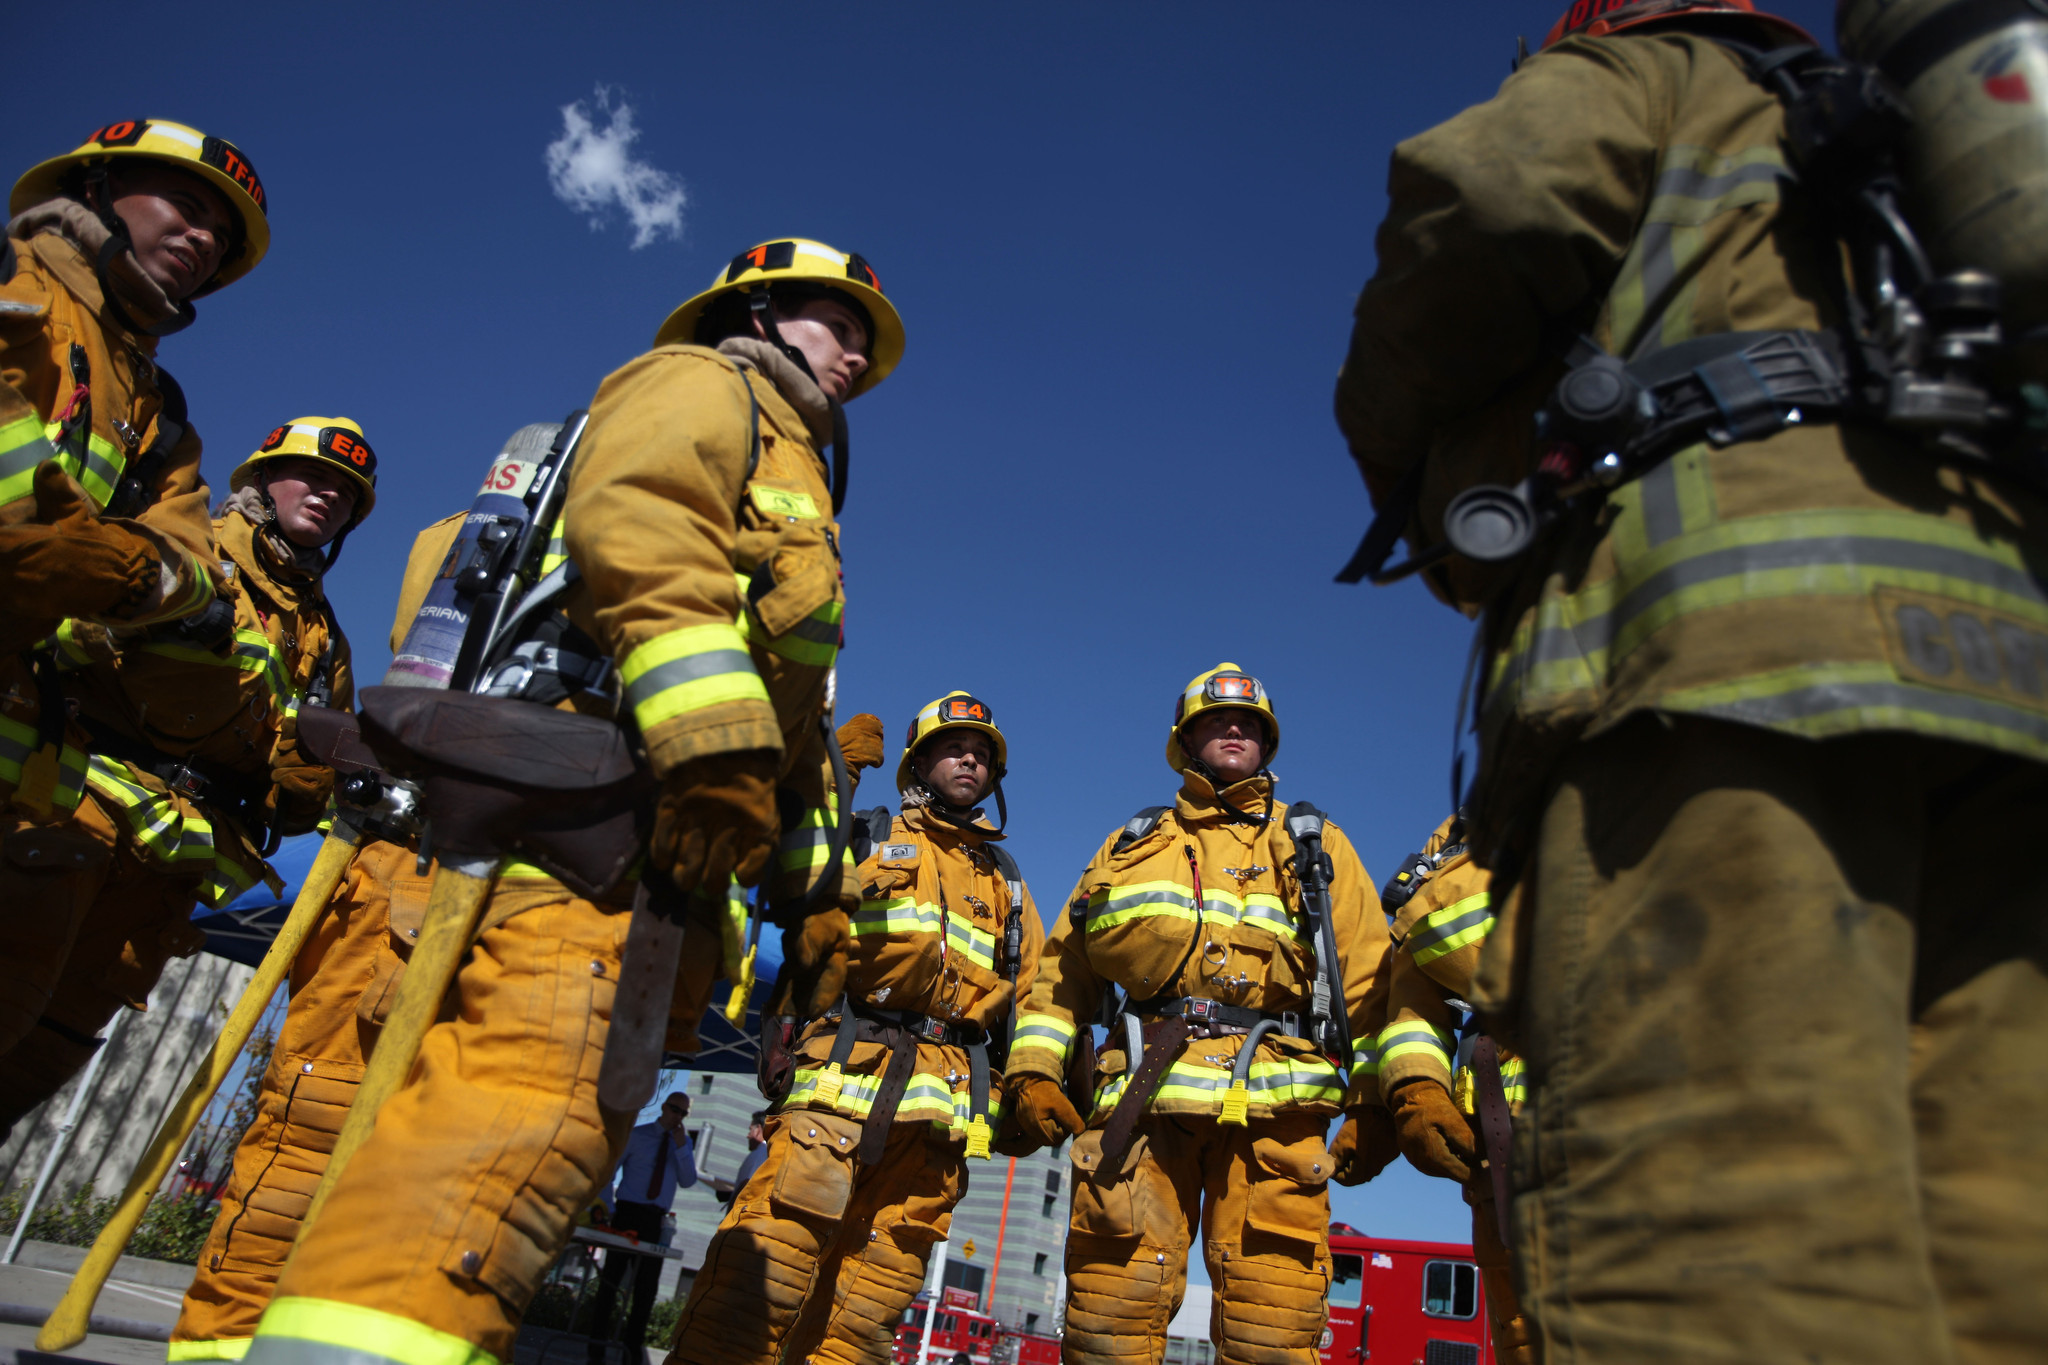 LAFD failed to properly inspect hundreds of hazardous sites, state says